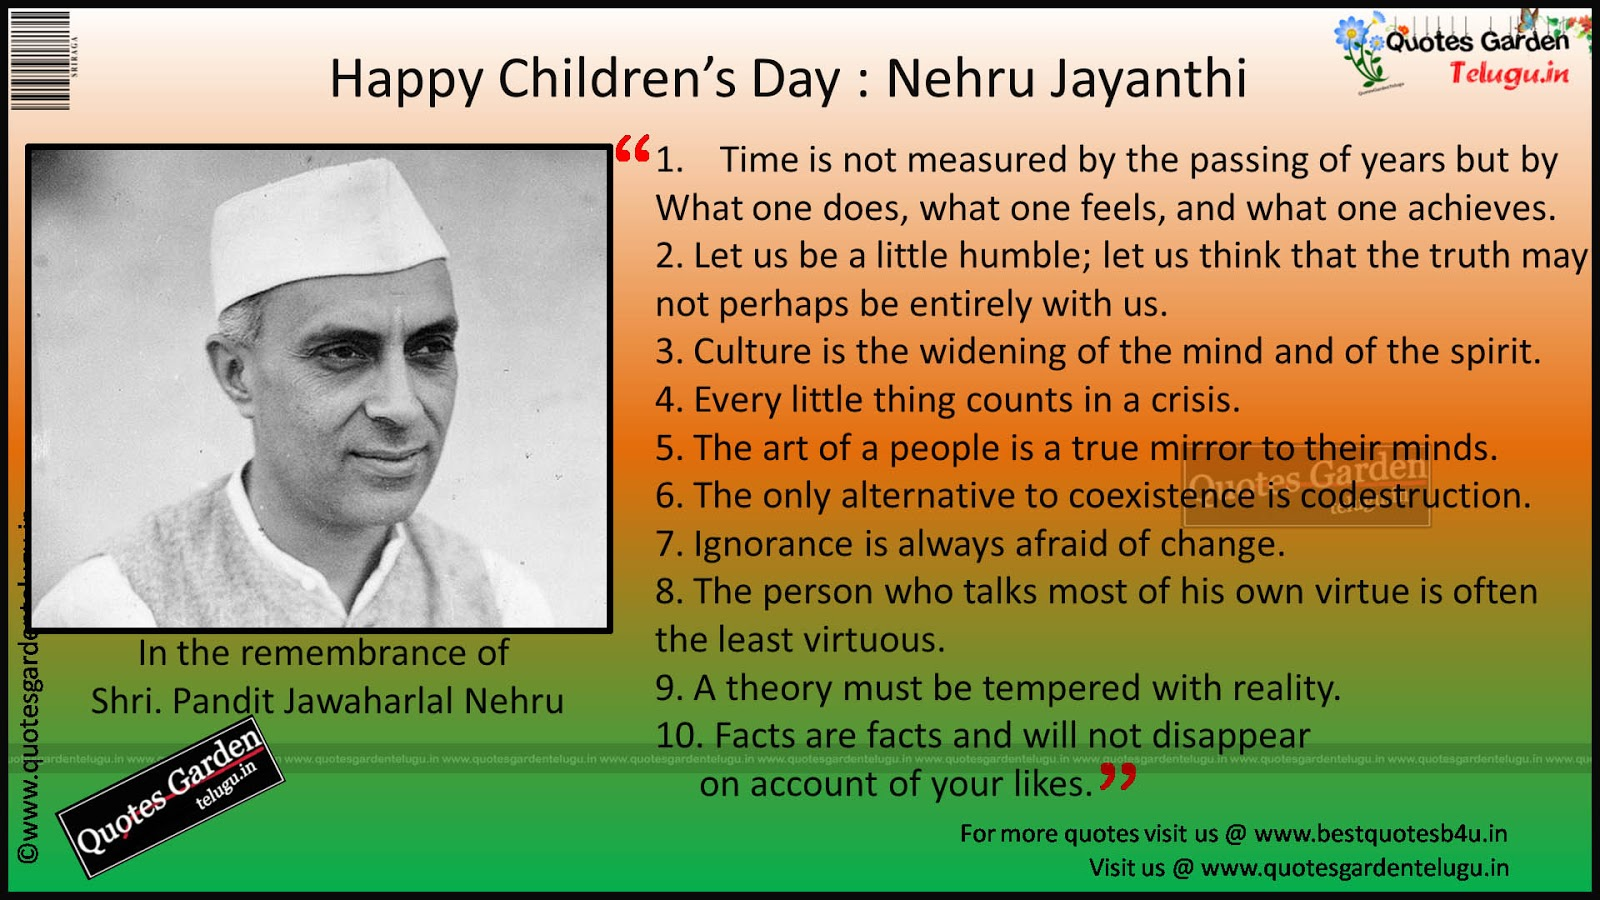 essay on jawaharlal nehru for kids essay on jawaharlal nehru for  essay on jawaharlal nehru for kids short essay on pandit essay on pandit jawaharlal nehrupandit jawaharlal